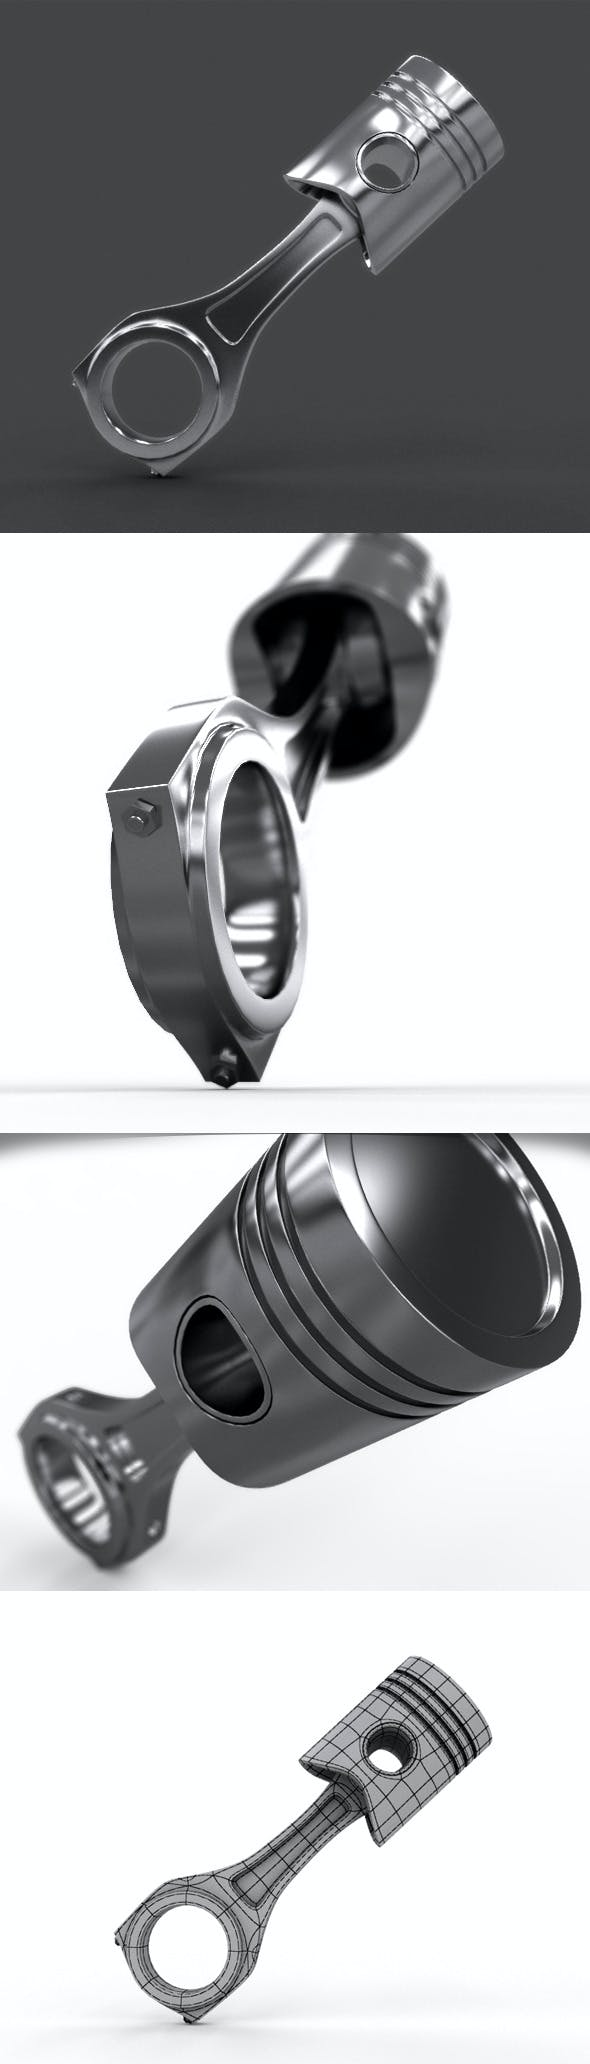 Realistic Piston With Material - 3DOcean Item for Sale